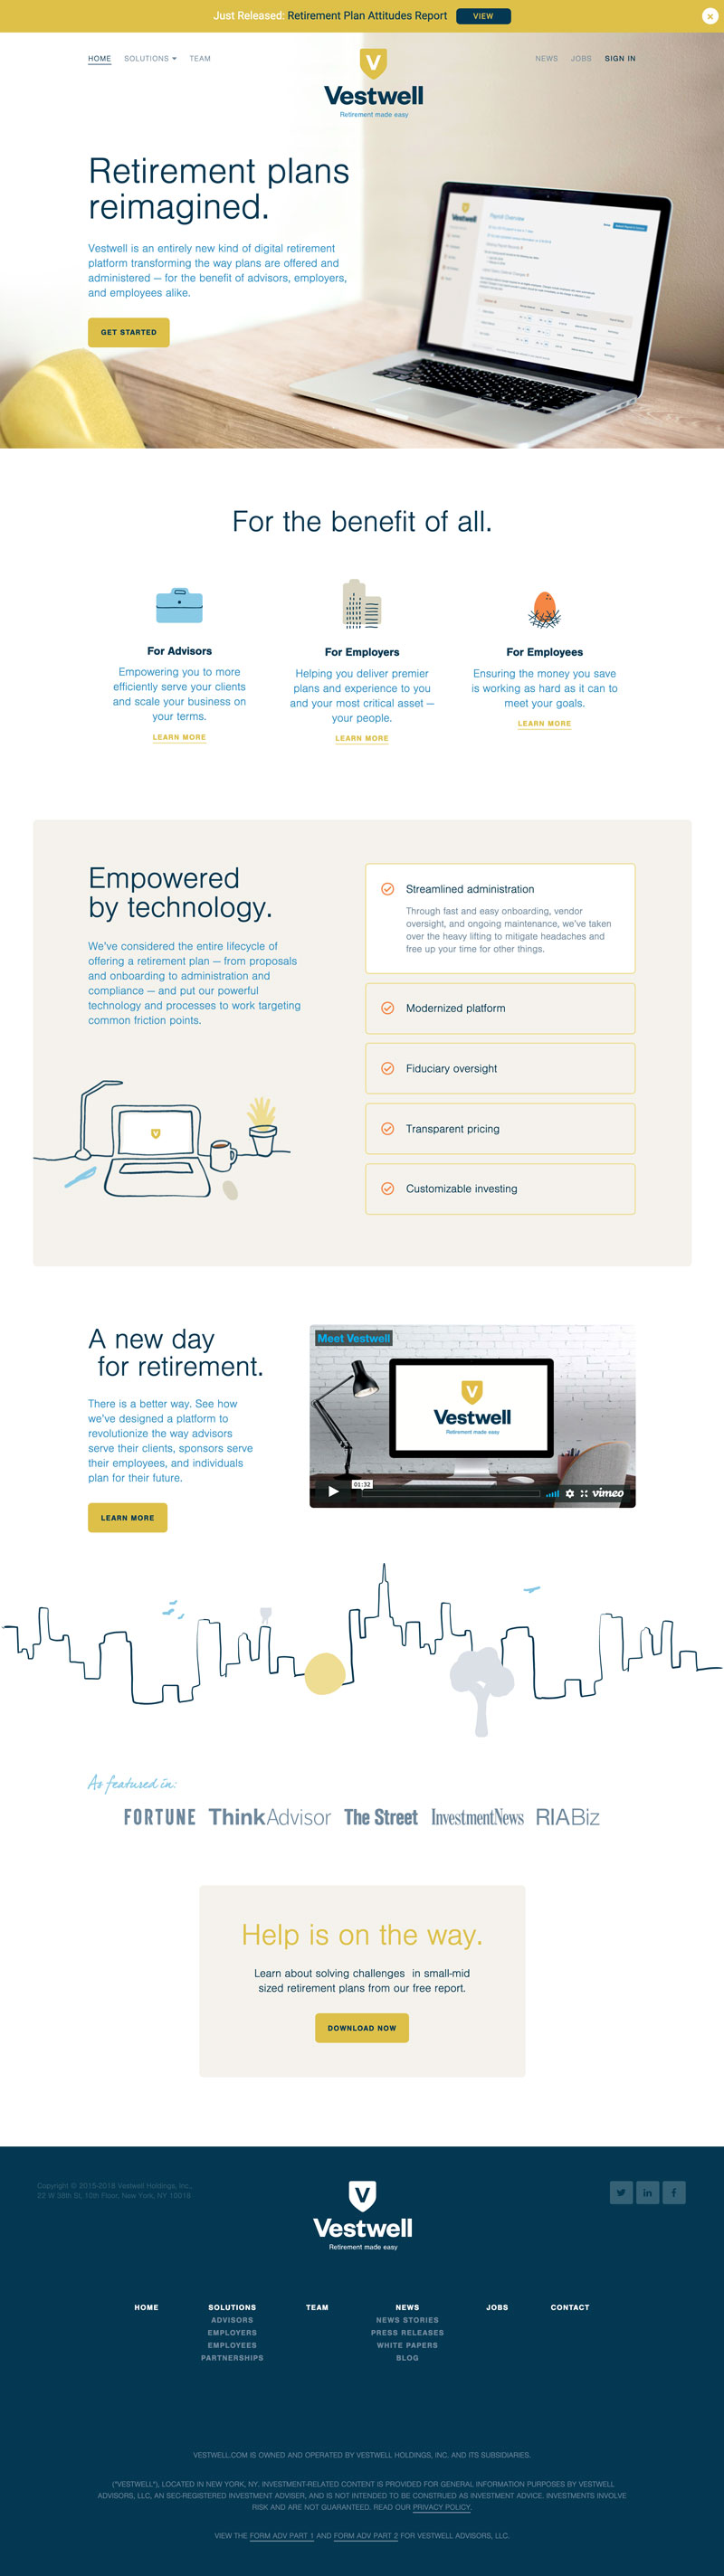 The homepage of Vestwell.com.